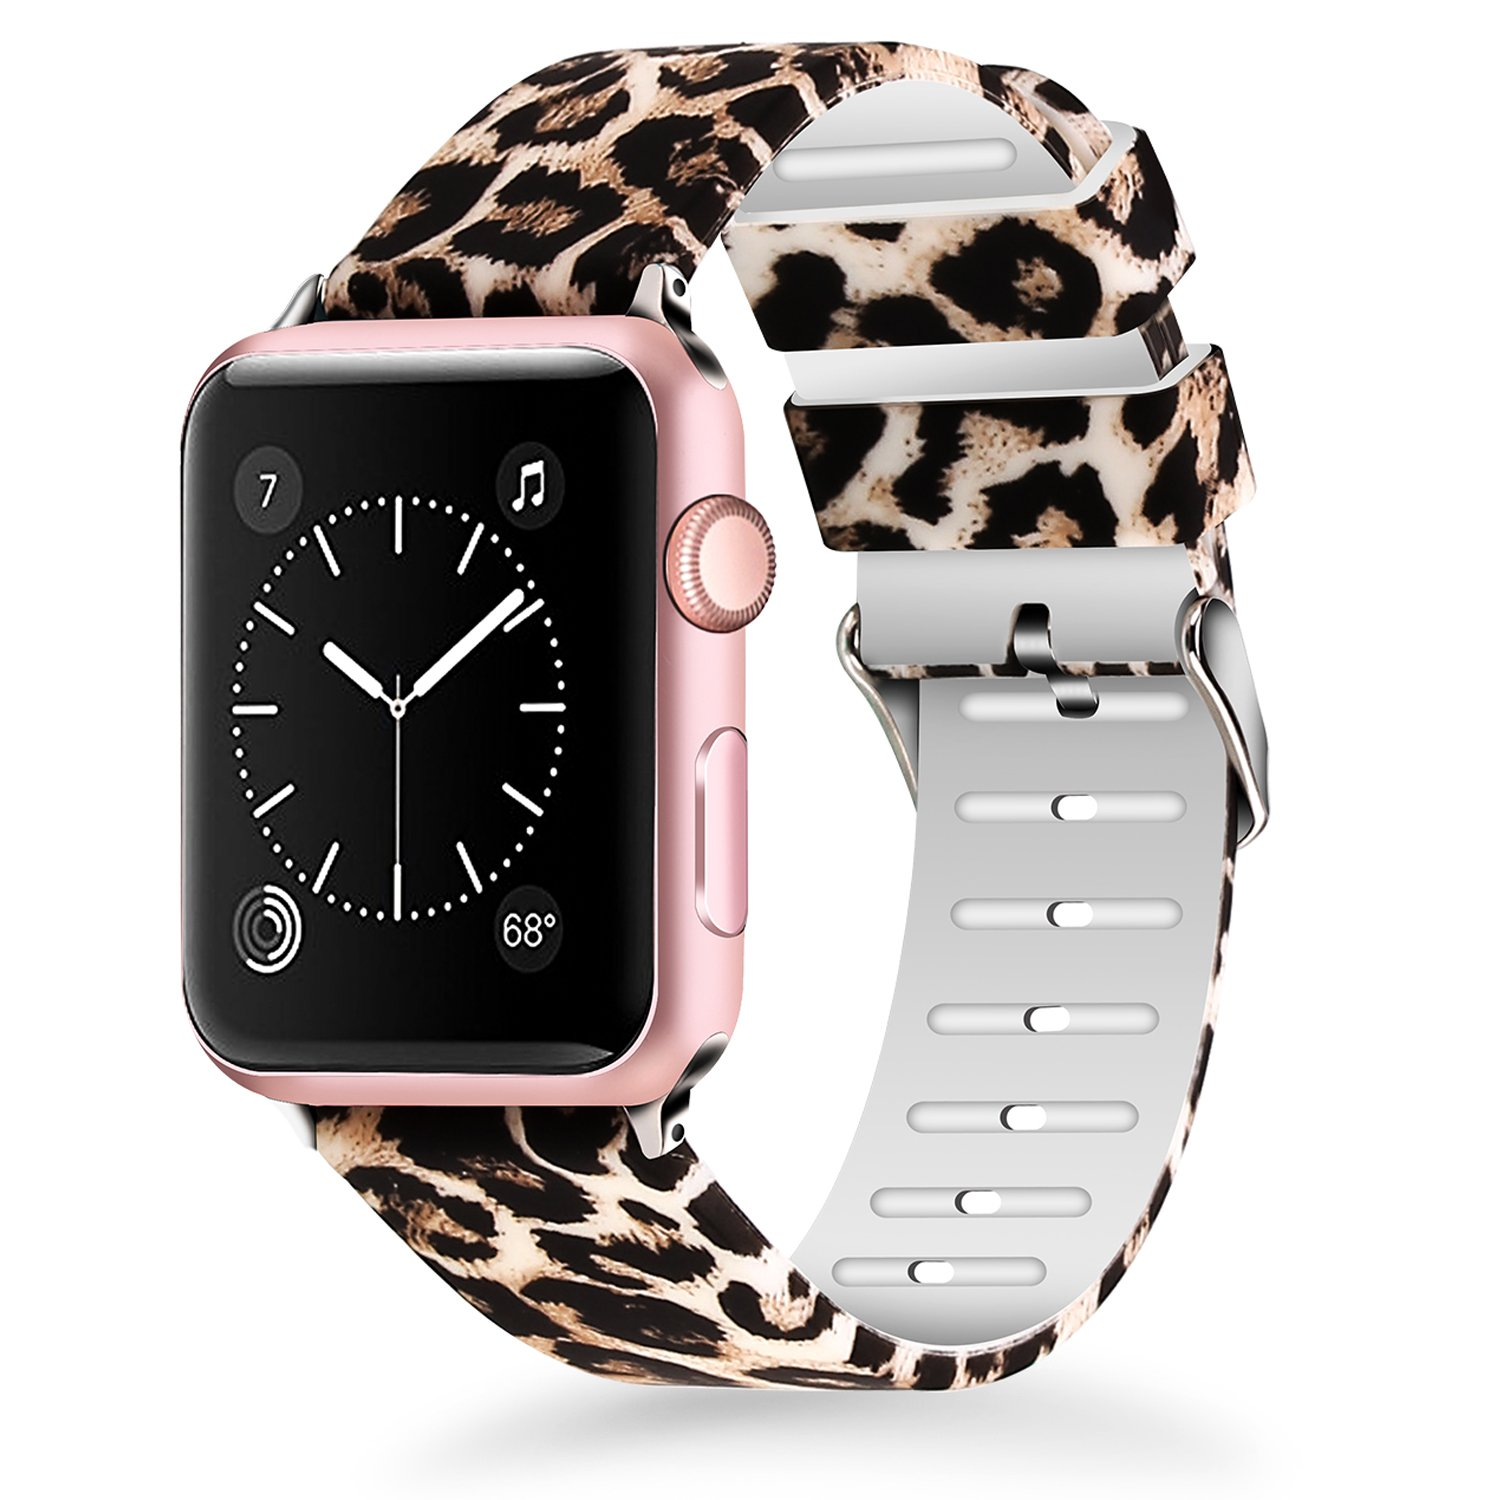 Lwsengme For Apple Watch Band 38mm, Women Soft Silicone Replacment Sport Bands for iWatch Series 3 Series 2 Series 1 - Leopard Pattern Printed